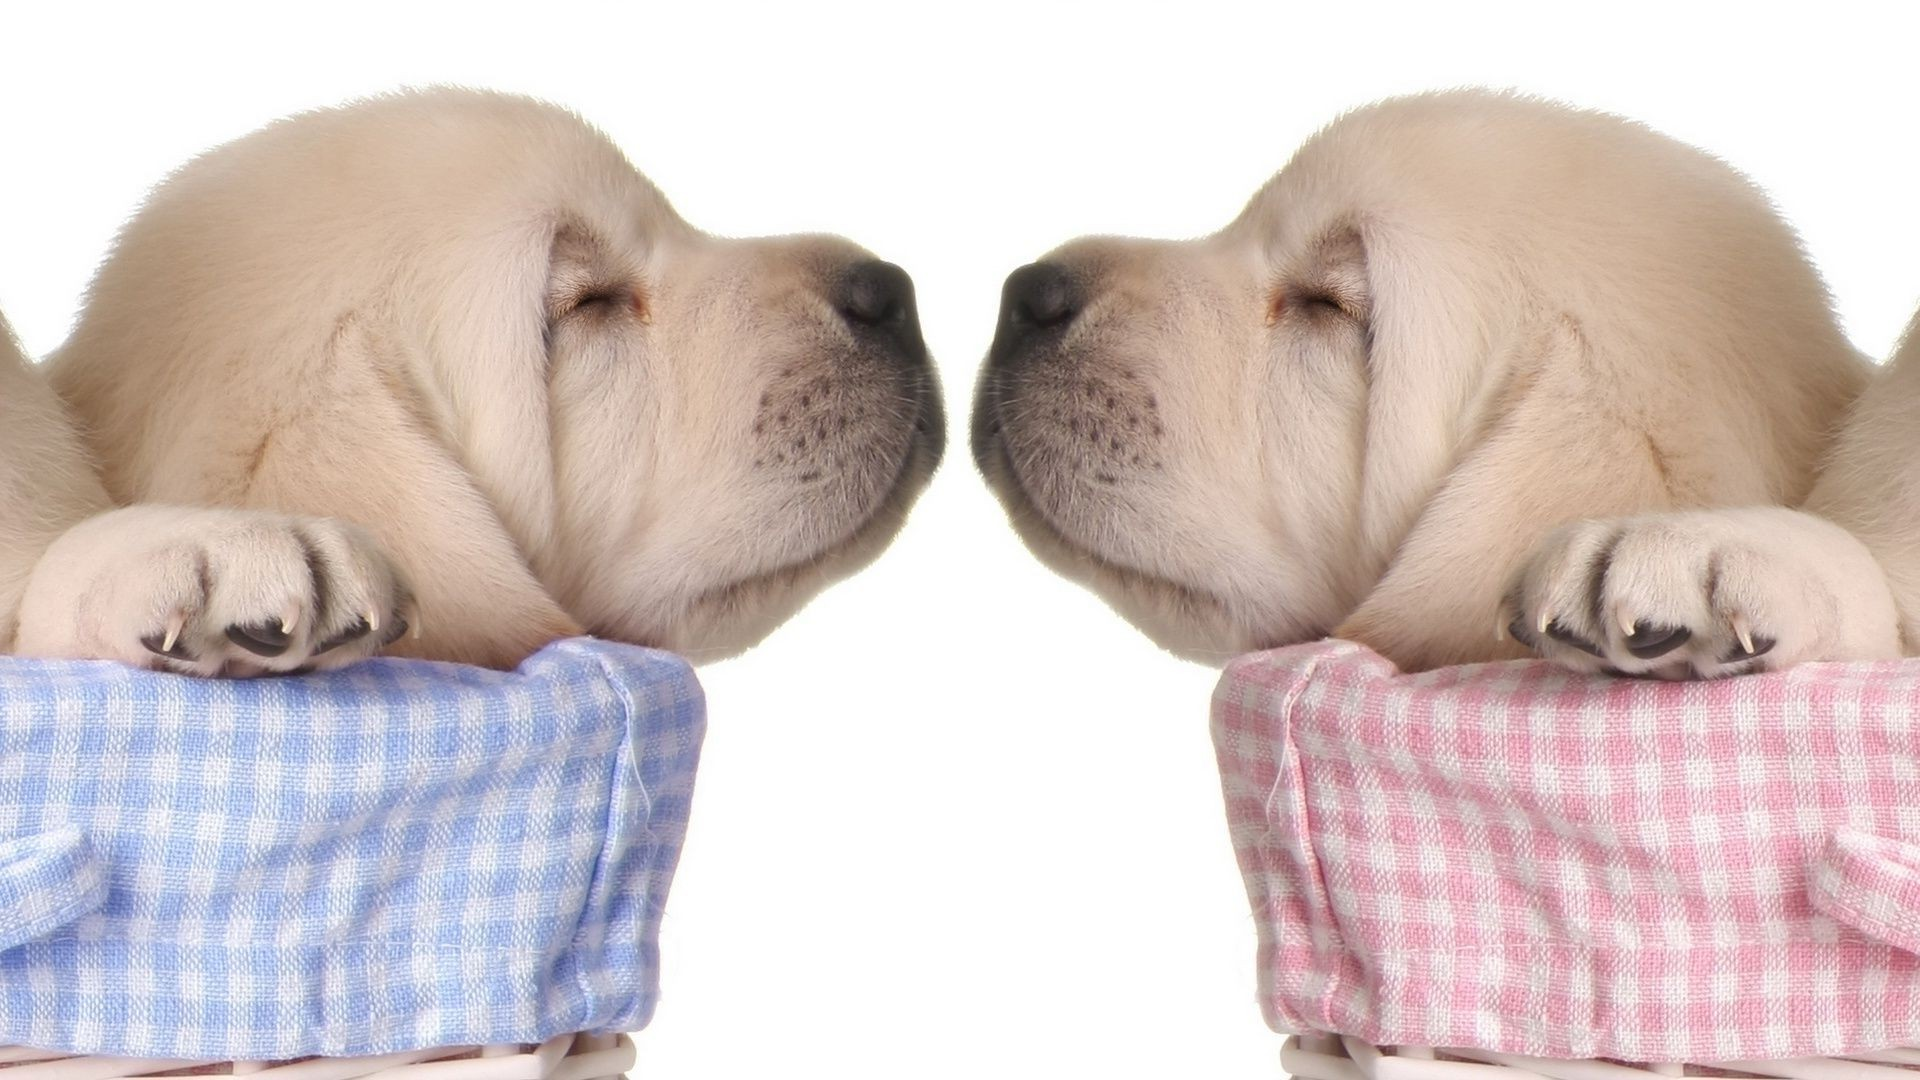 two puppies of white color touch each other muzzles